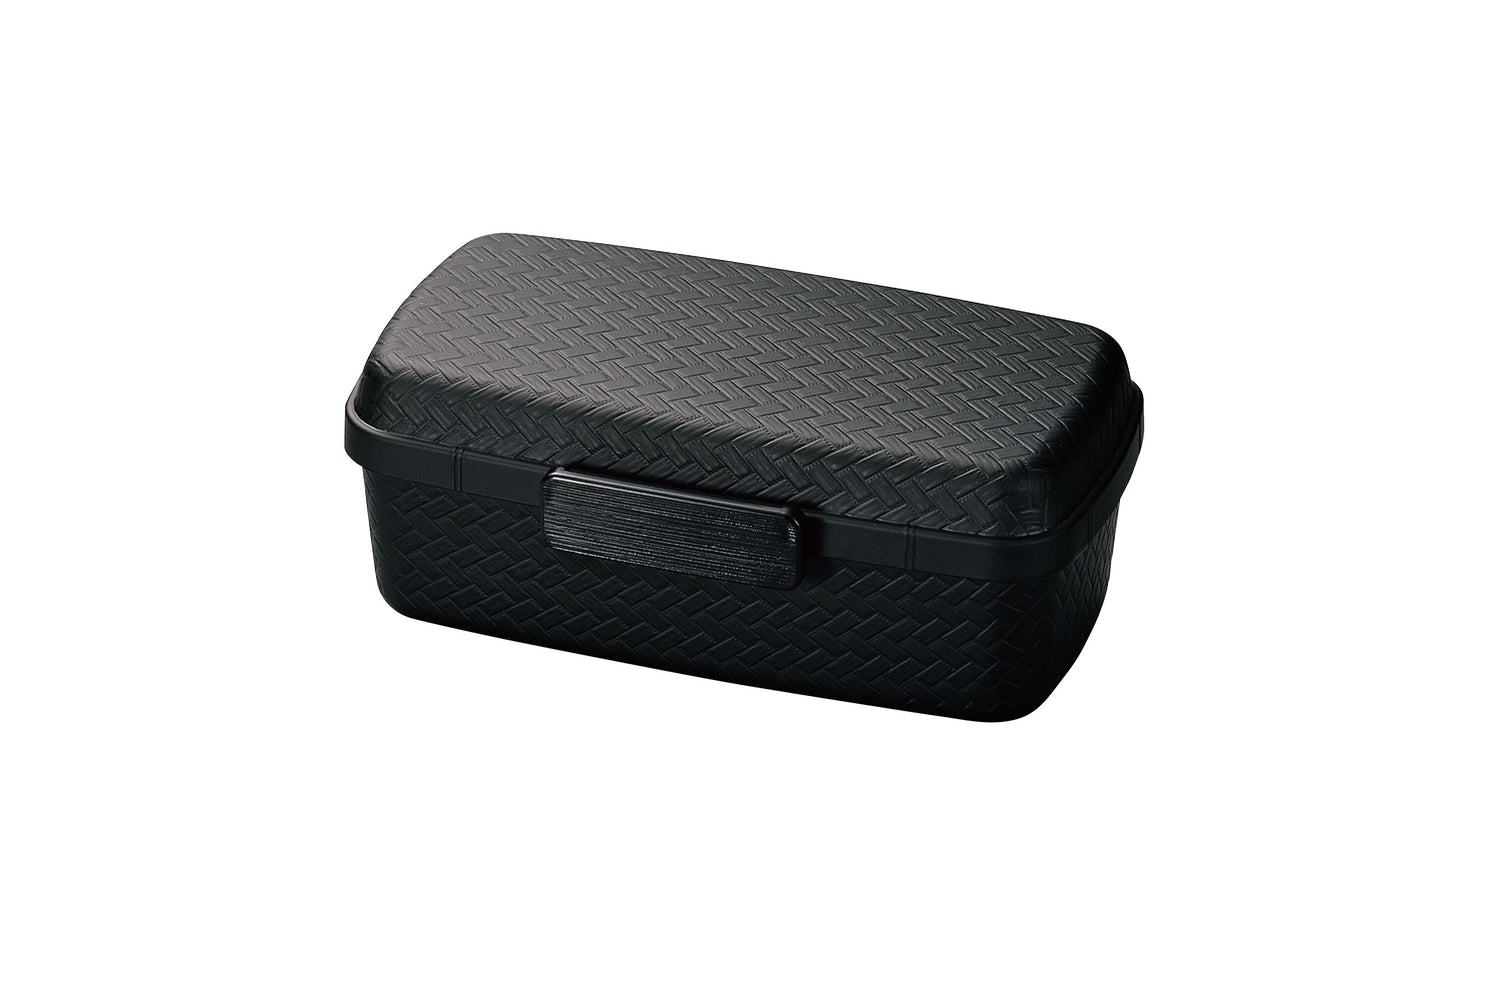 Nuri Ajiro Side Lock Bento Box Large | Black by Hakoya - Bento&co Japanese Bento Lunch Boxes and Kitchenware Specialists